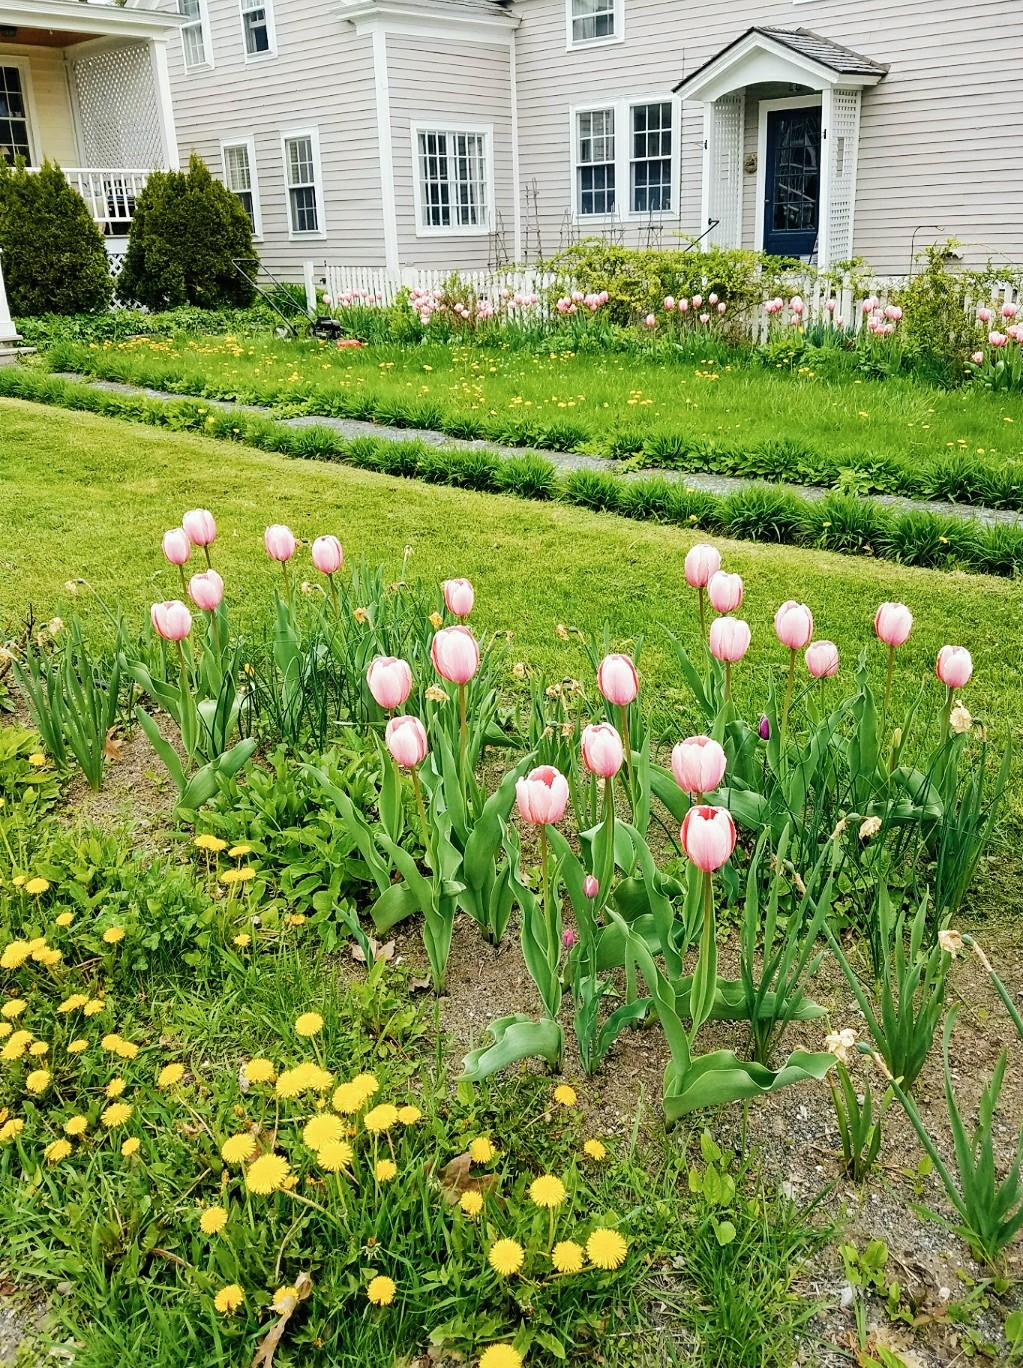 Backyard of a house with tulips planted in the ground